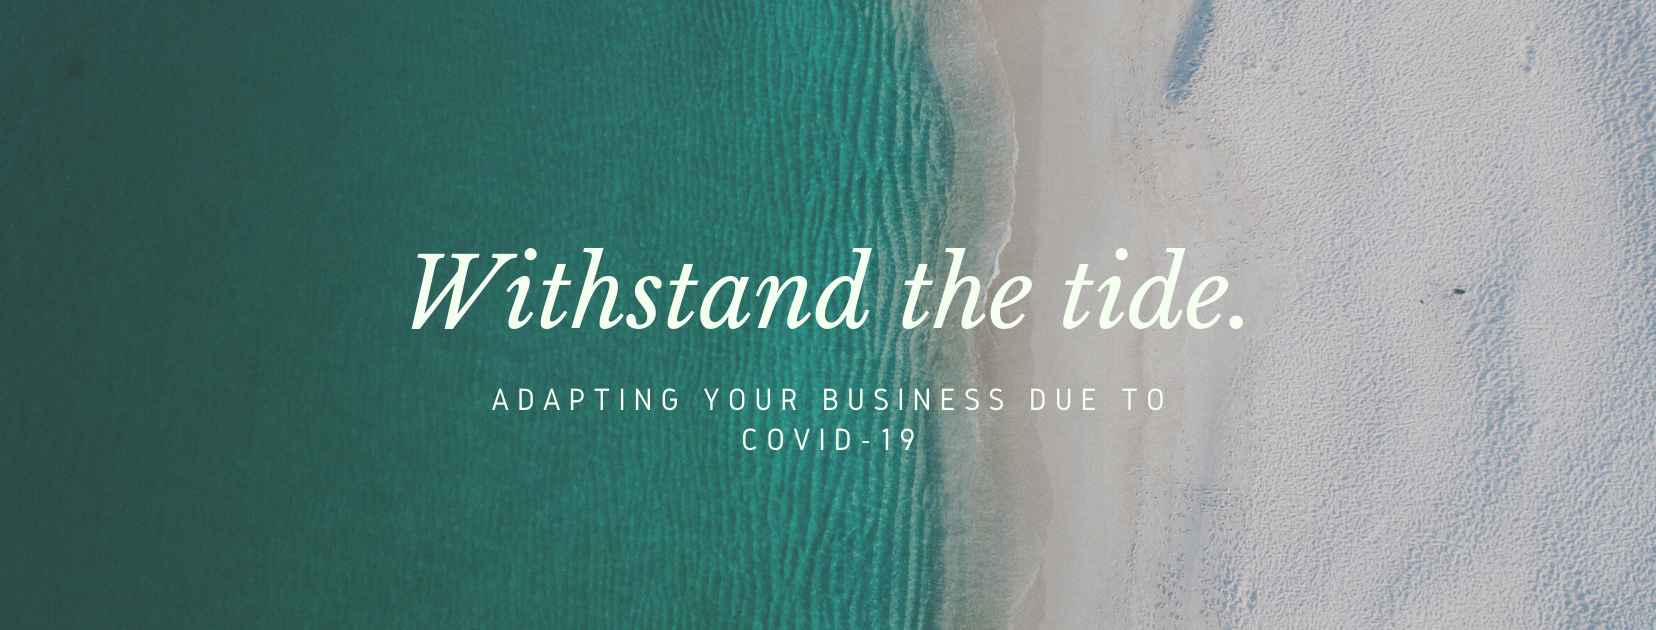 Does Your Business Need To Adapt Due To Covid-19?